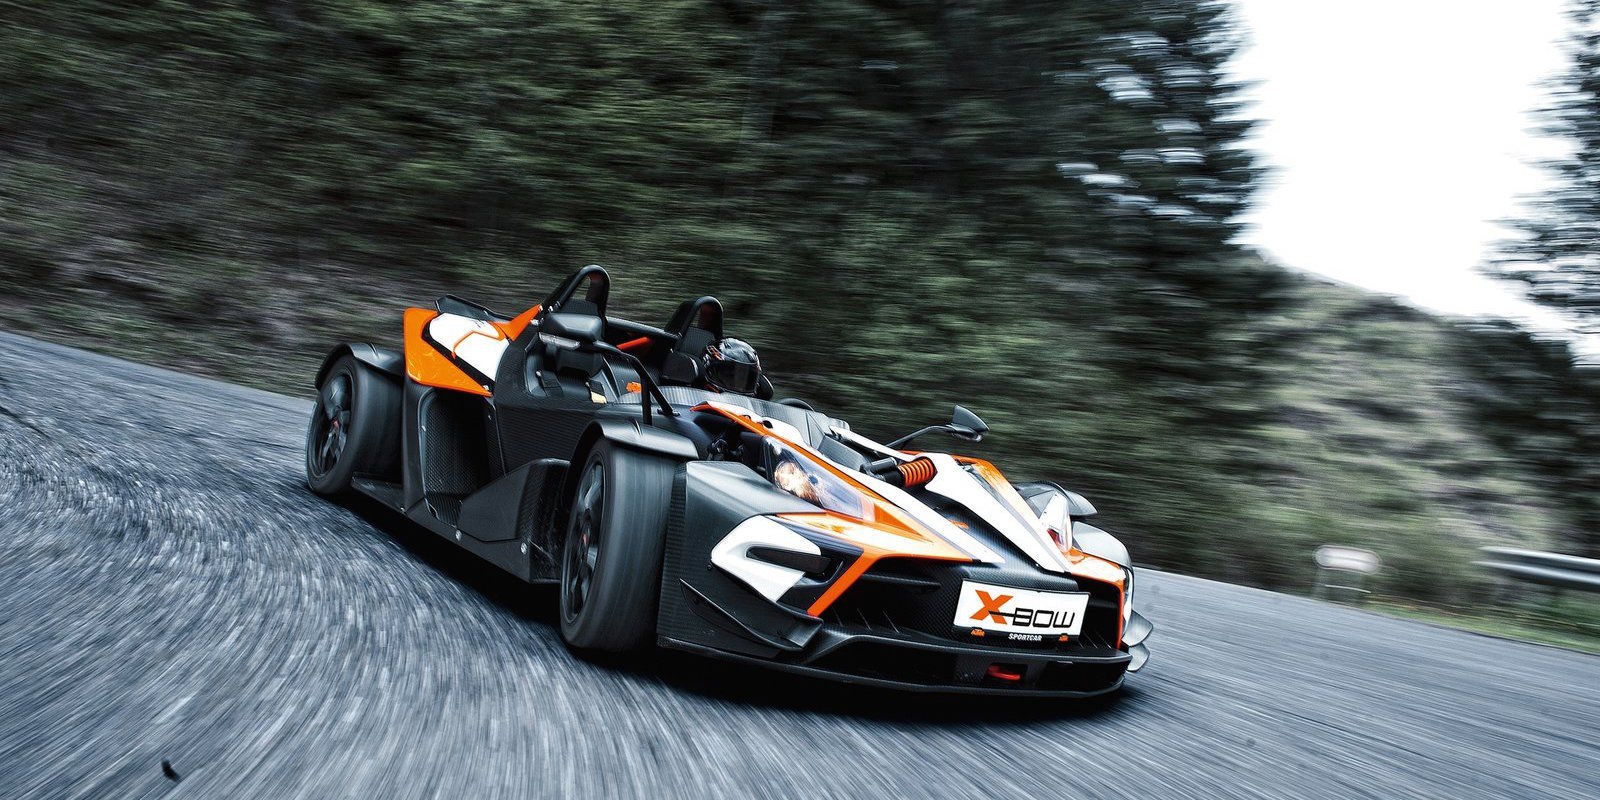 ktm will bring the x bow track car to the u s next year. Black Bedroom Furniture Sets. Home Design Ideas